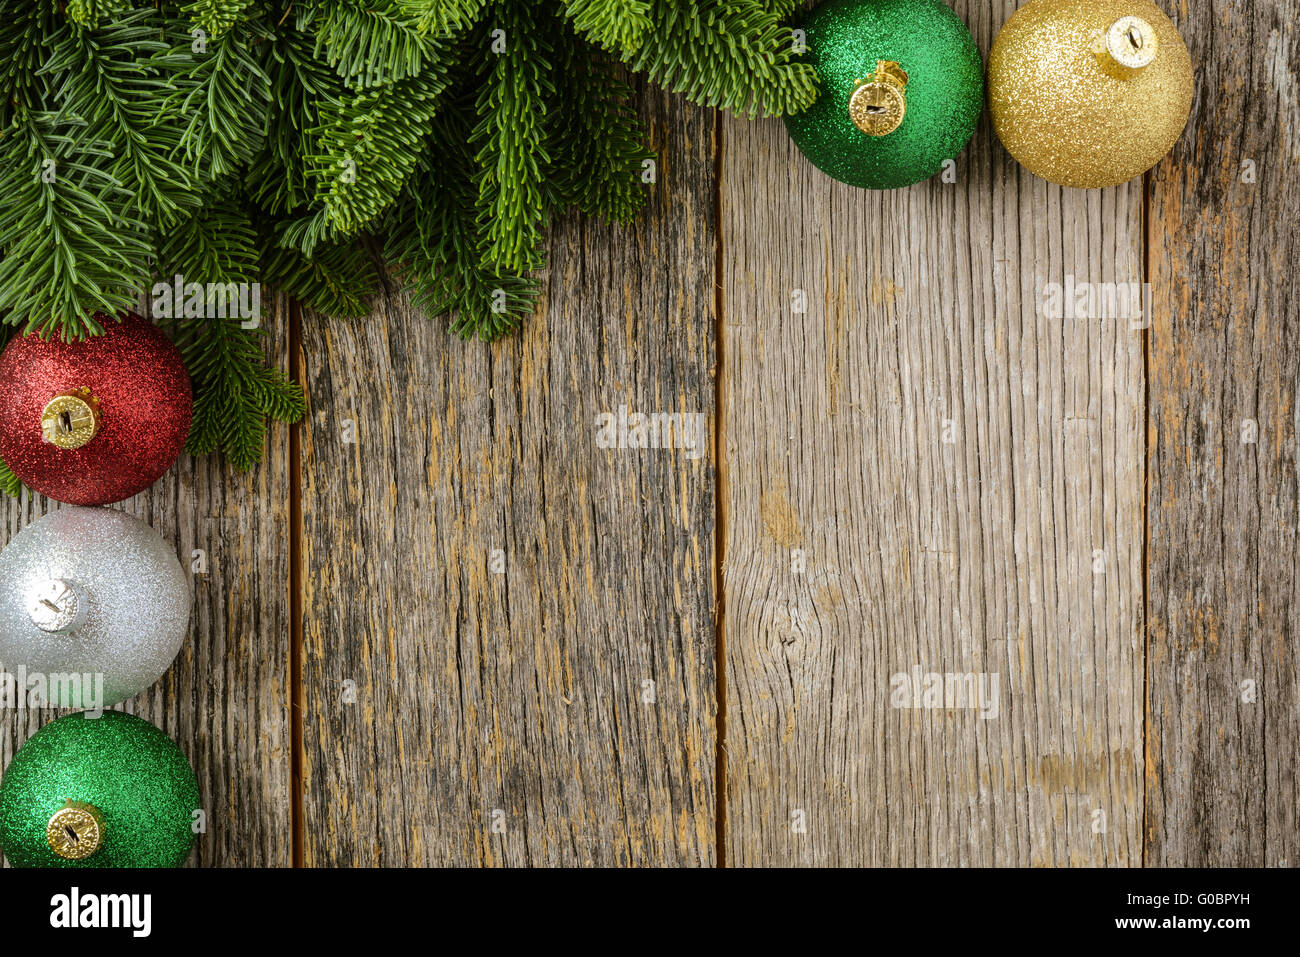 Christmas Pine Needle And Ornaments On A Rustic Wood